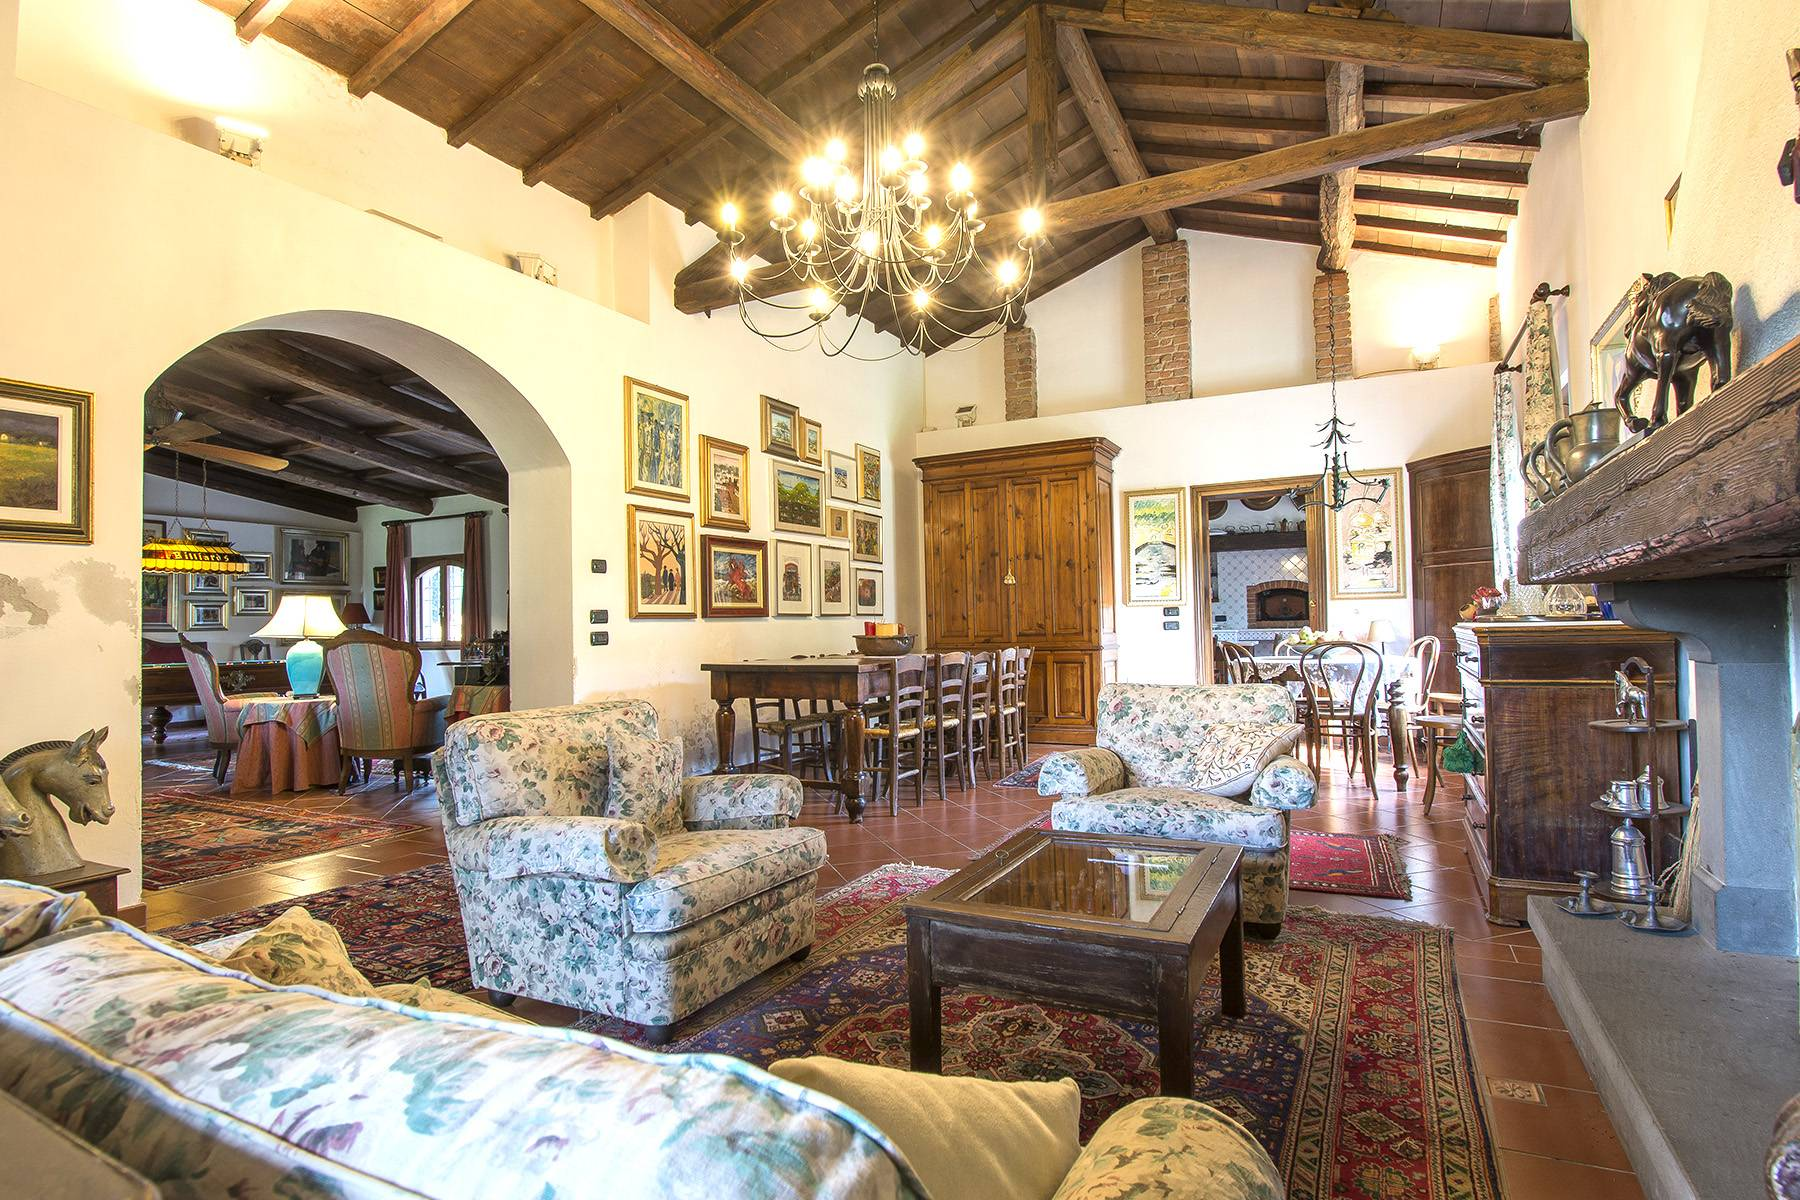 Equestrian farmhouse in the Tuscan countryside - 9